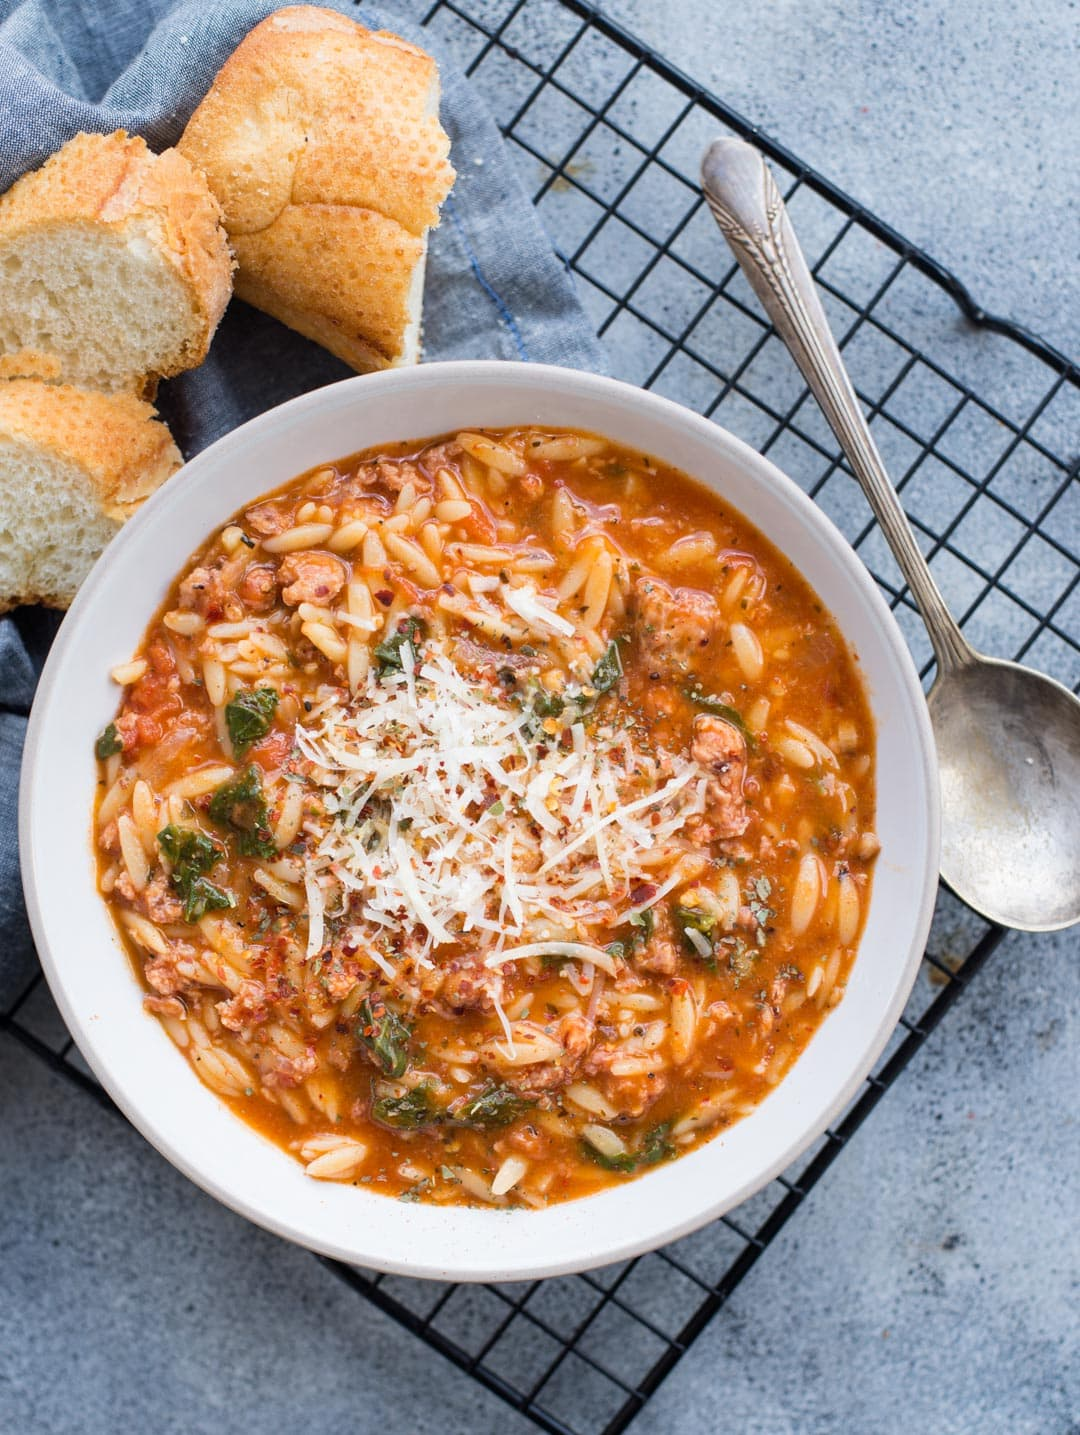 This Orzo Soup with Spicy Italian Sausage, Orzo Pasta with rich tomato flavour is delicious and takes only 20 minutes to make.